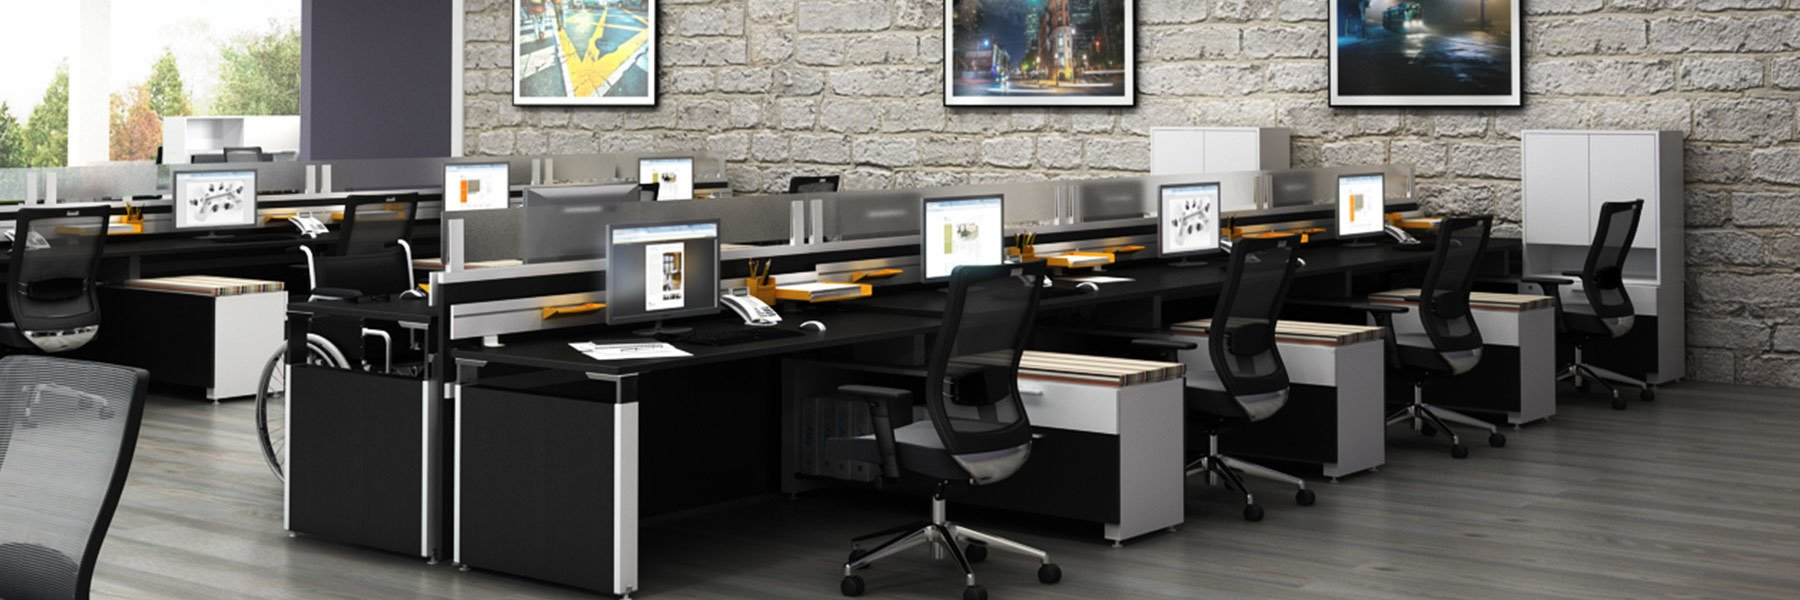 Office Furniture Installation In Alpharetta